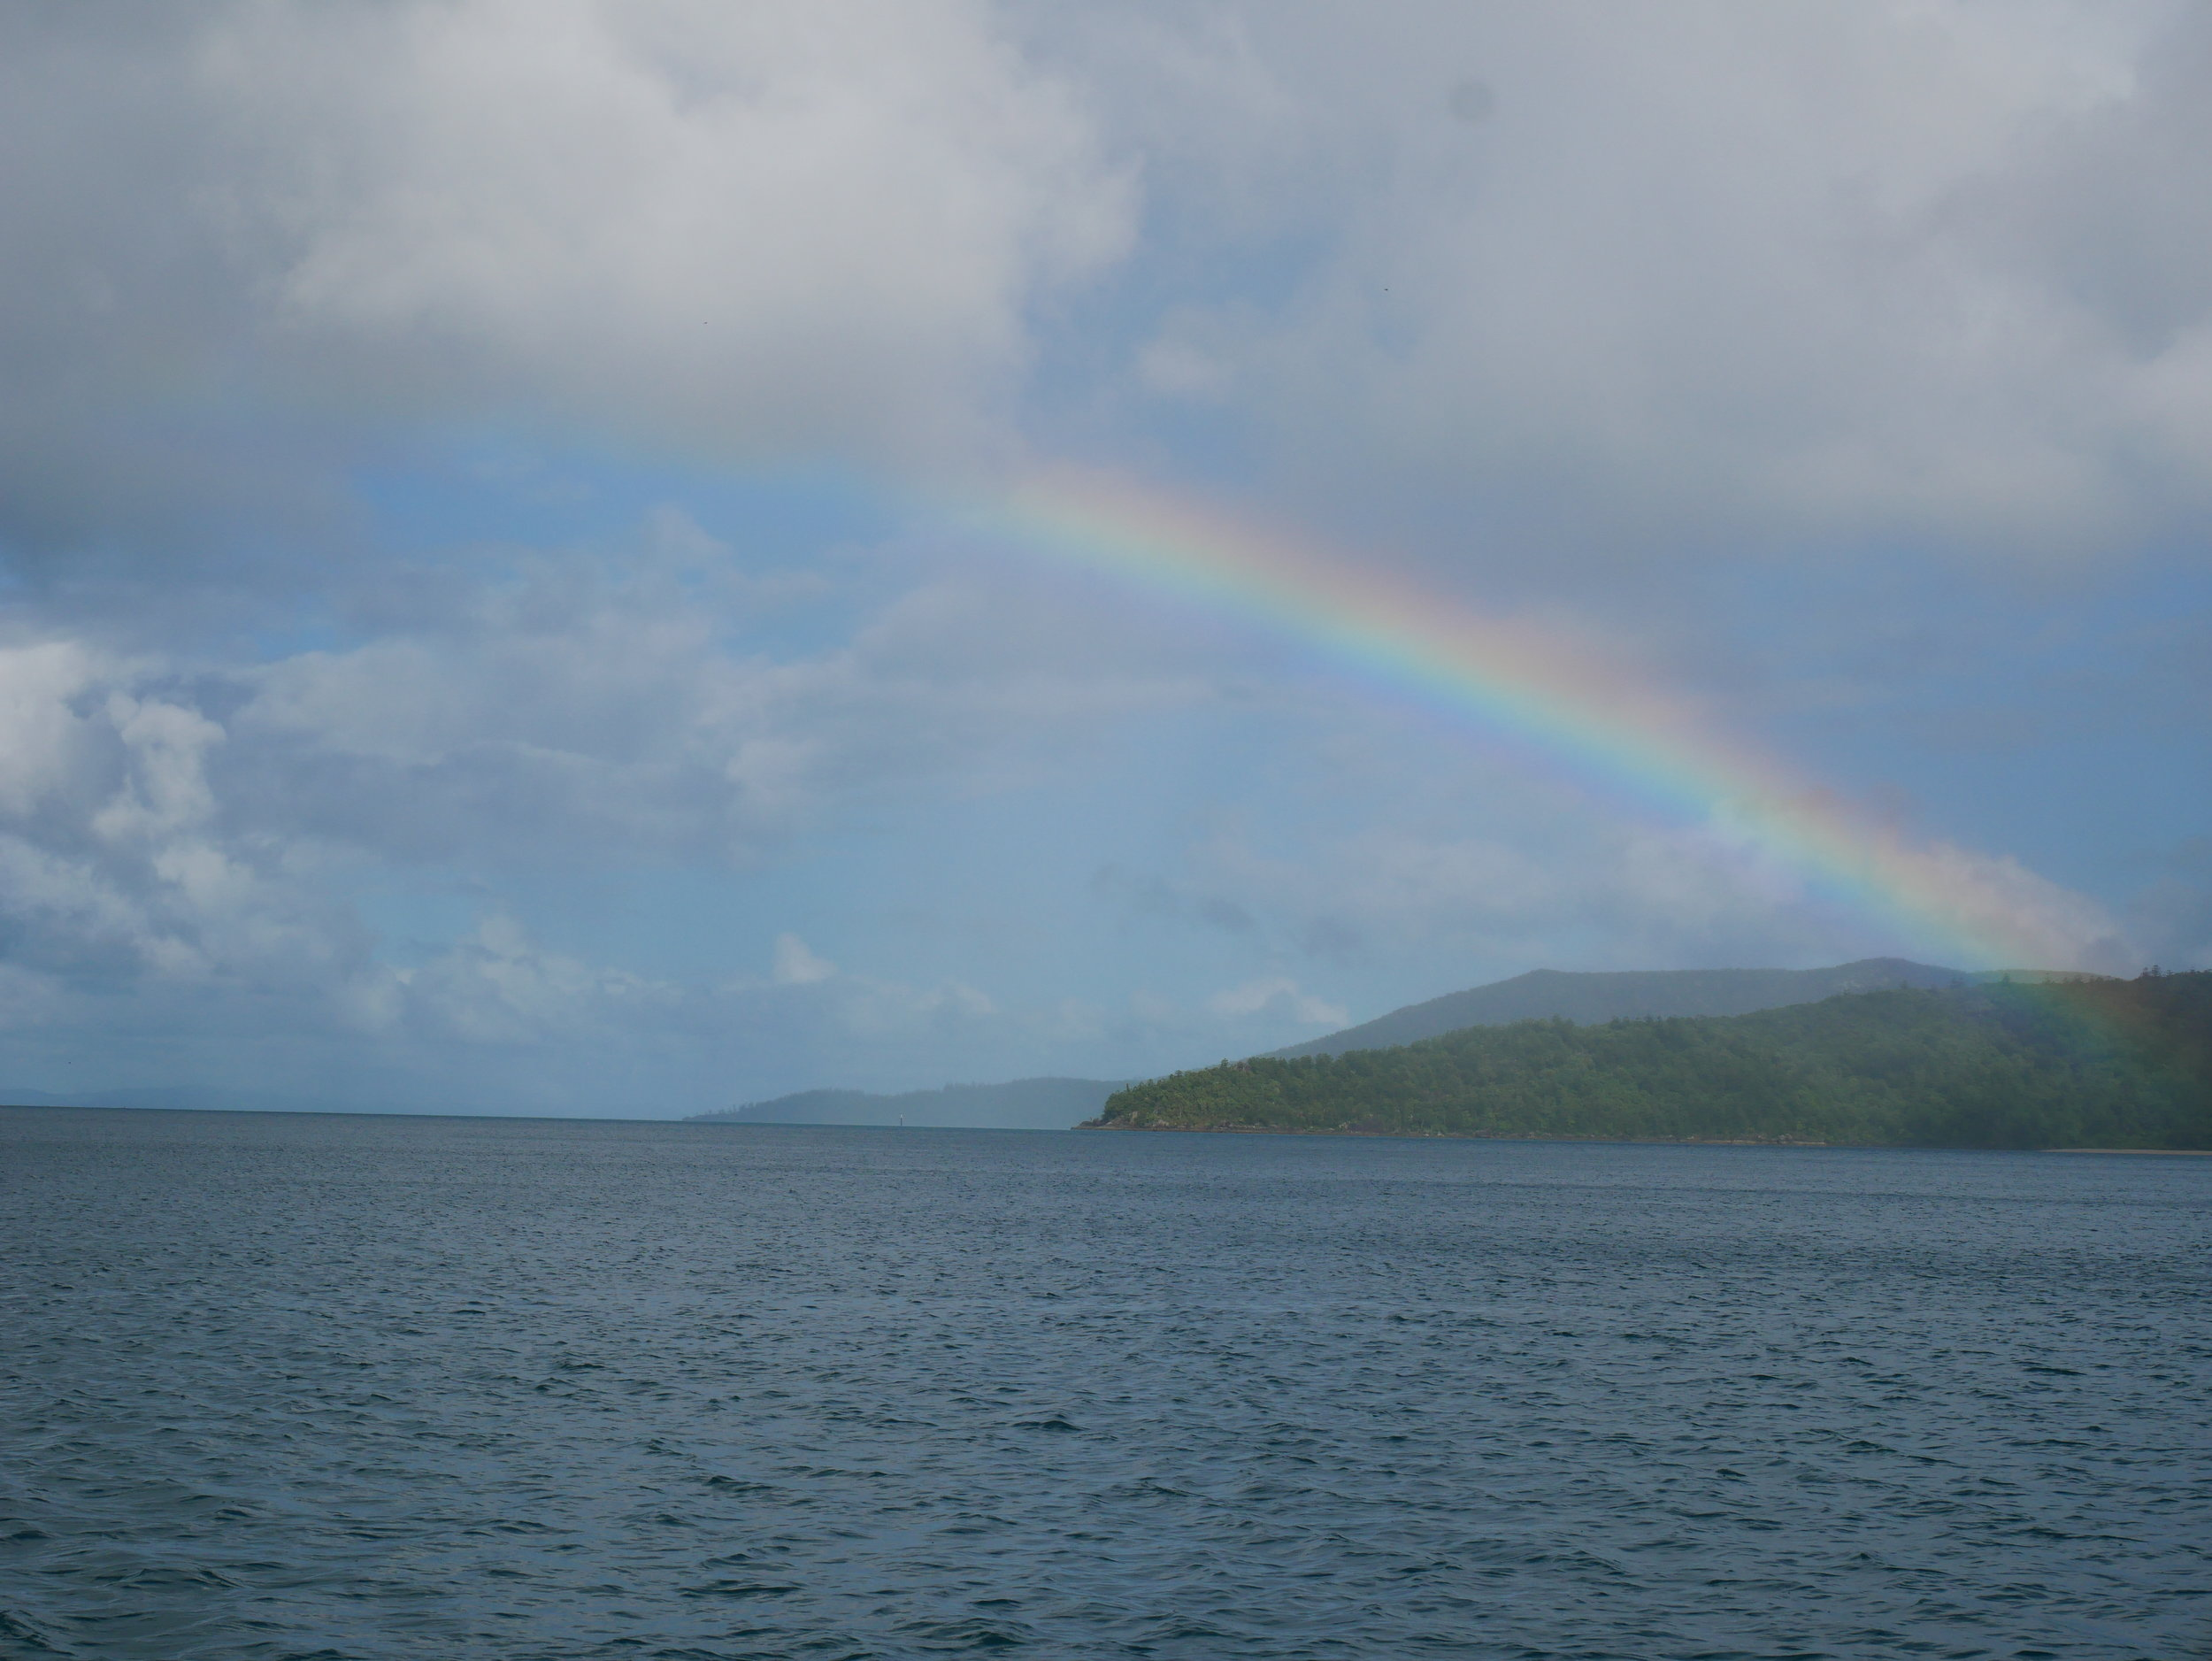 After some nighttime showers, the sun reappeared in the morning with this vibrant rainbow (Jan 25).